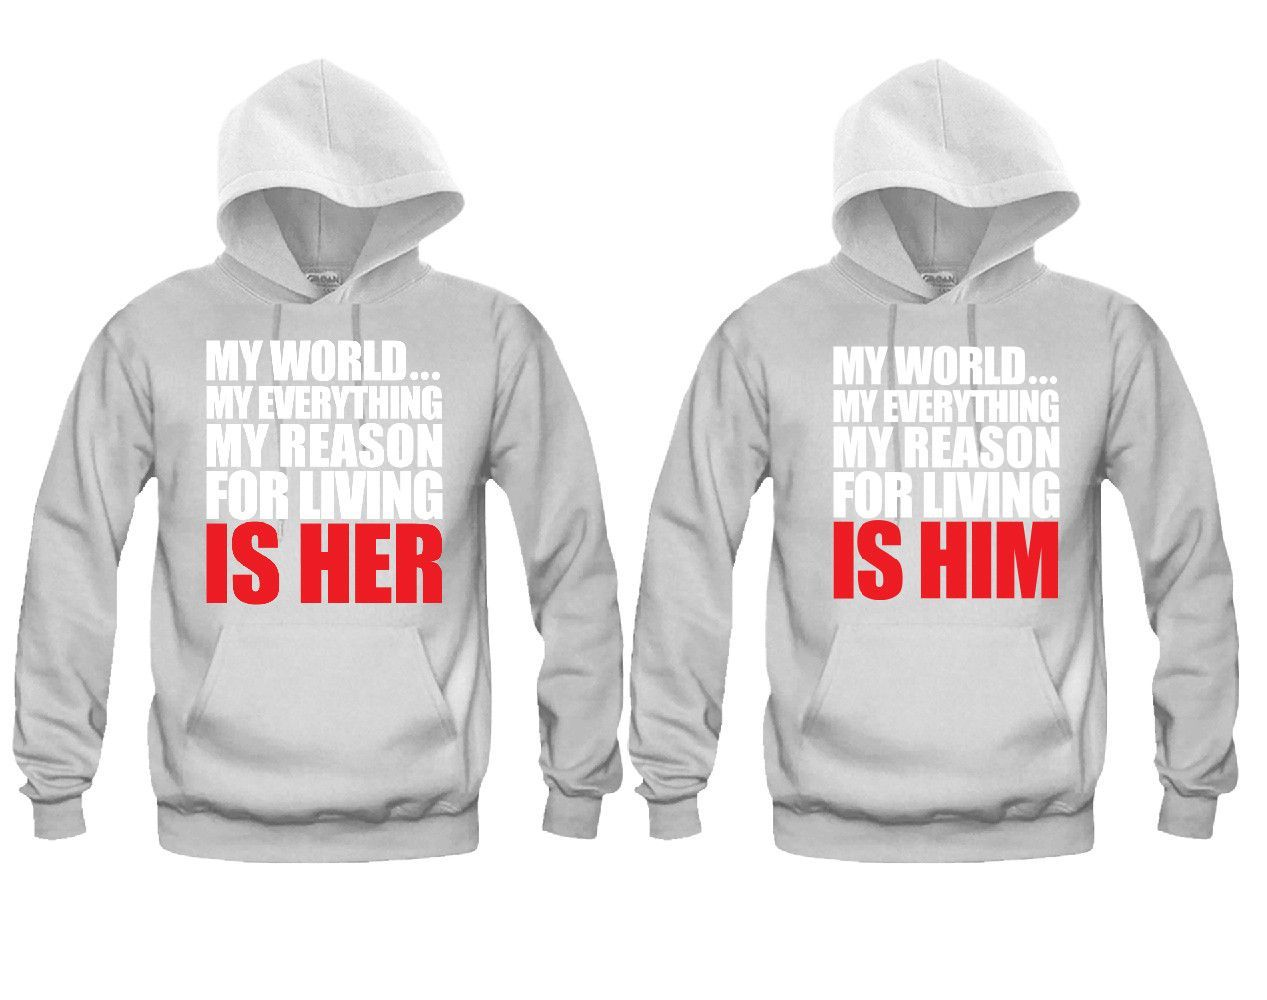 Him hoodies